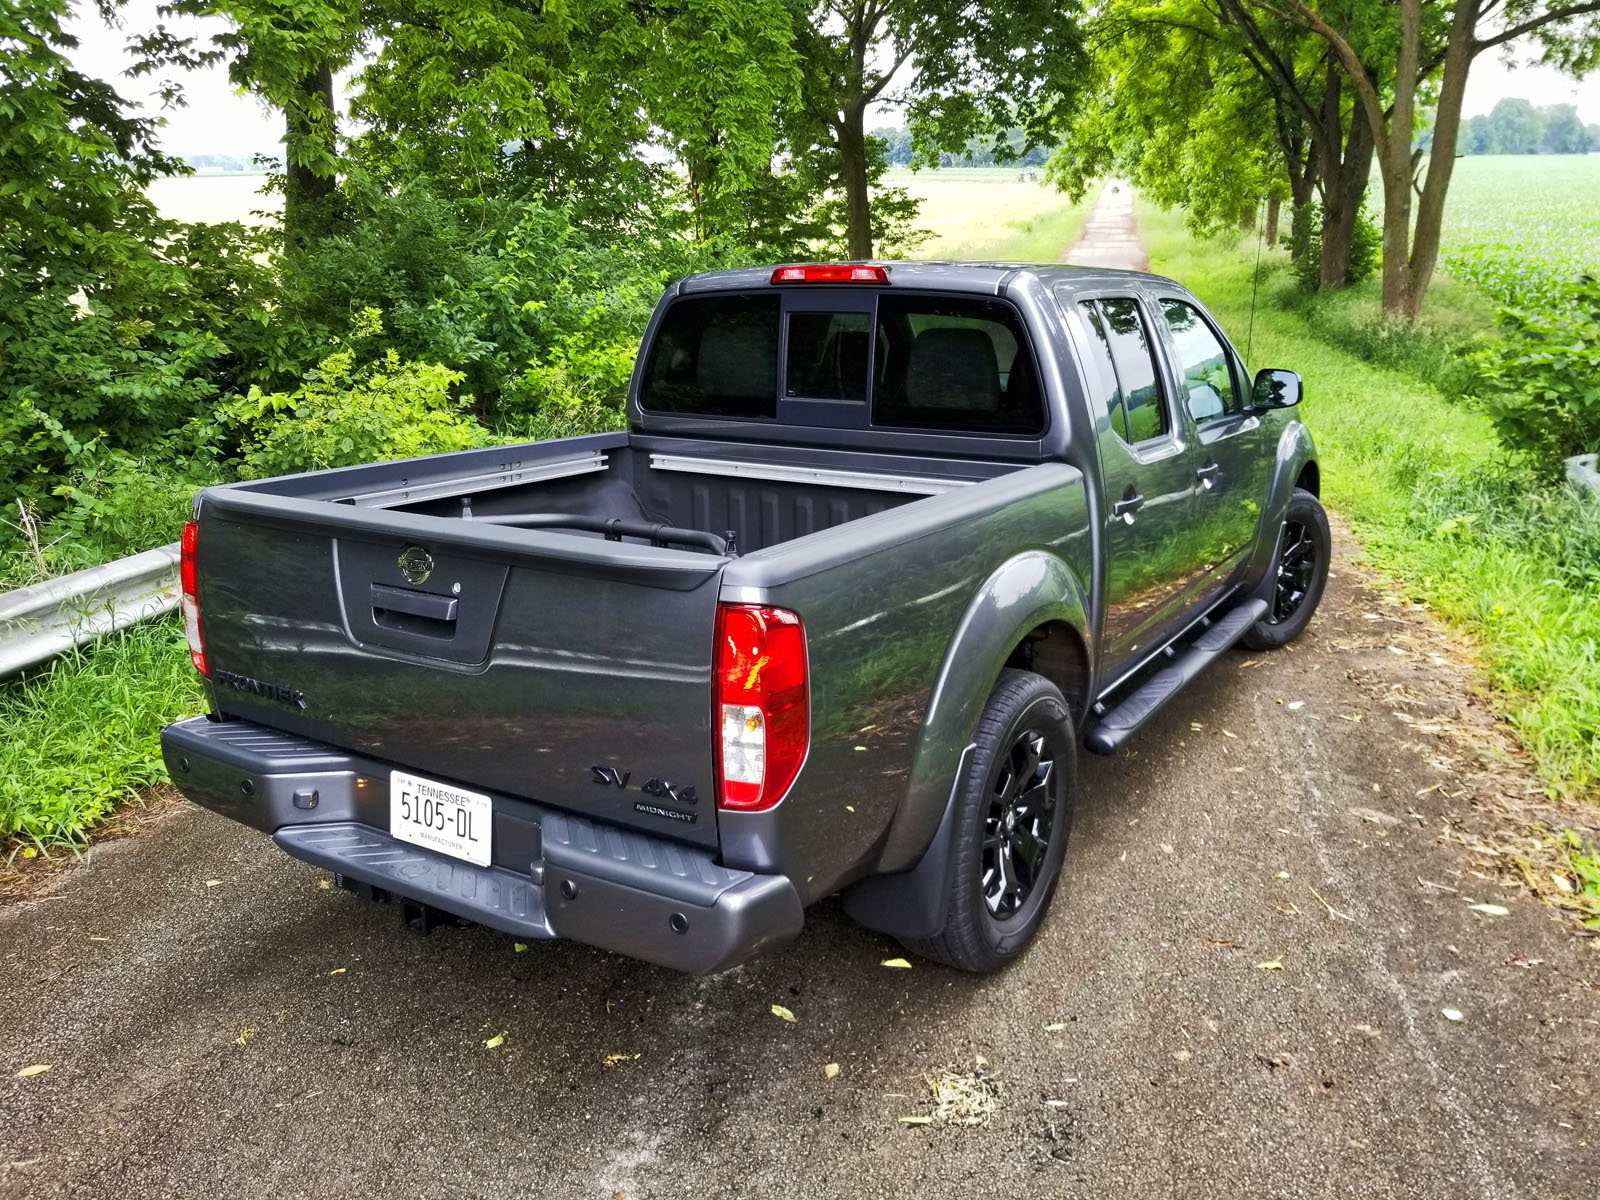 trucks getting too expensive 10 reasons to get a nissan. Black Bedroom Furniture Sets. Home Design Ideas